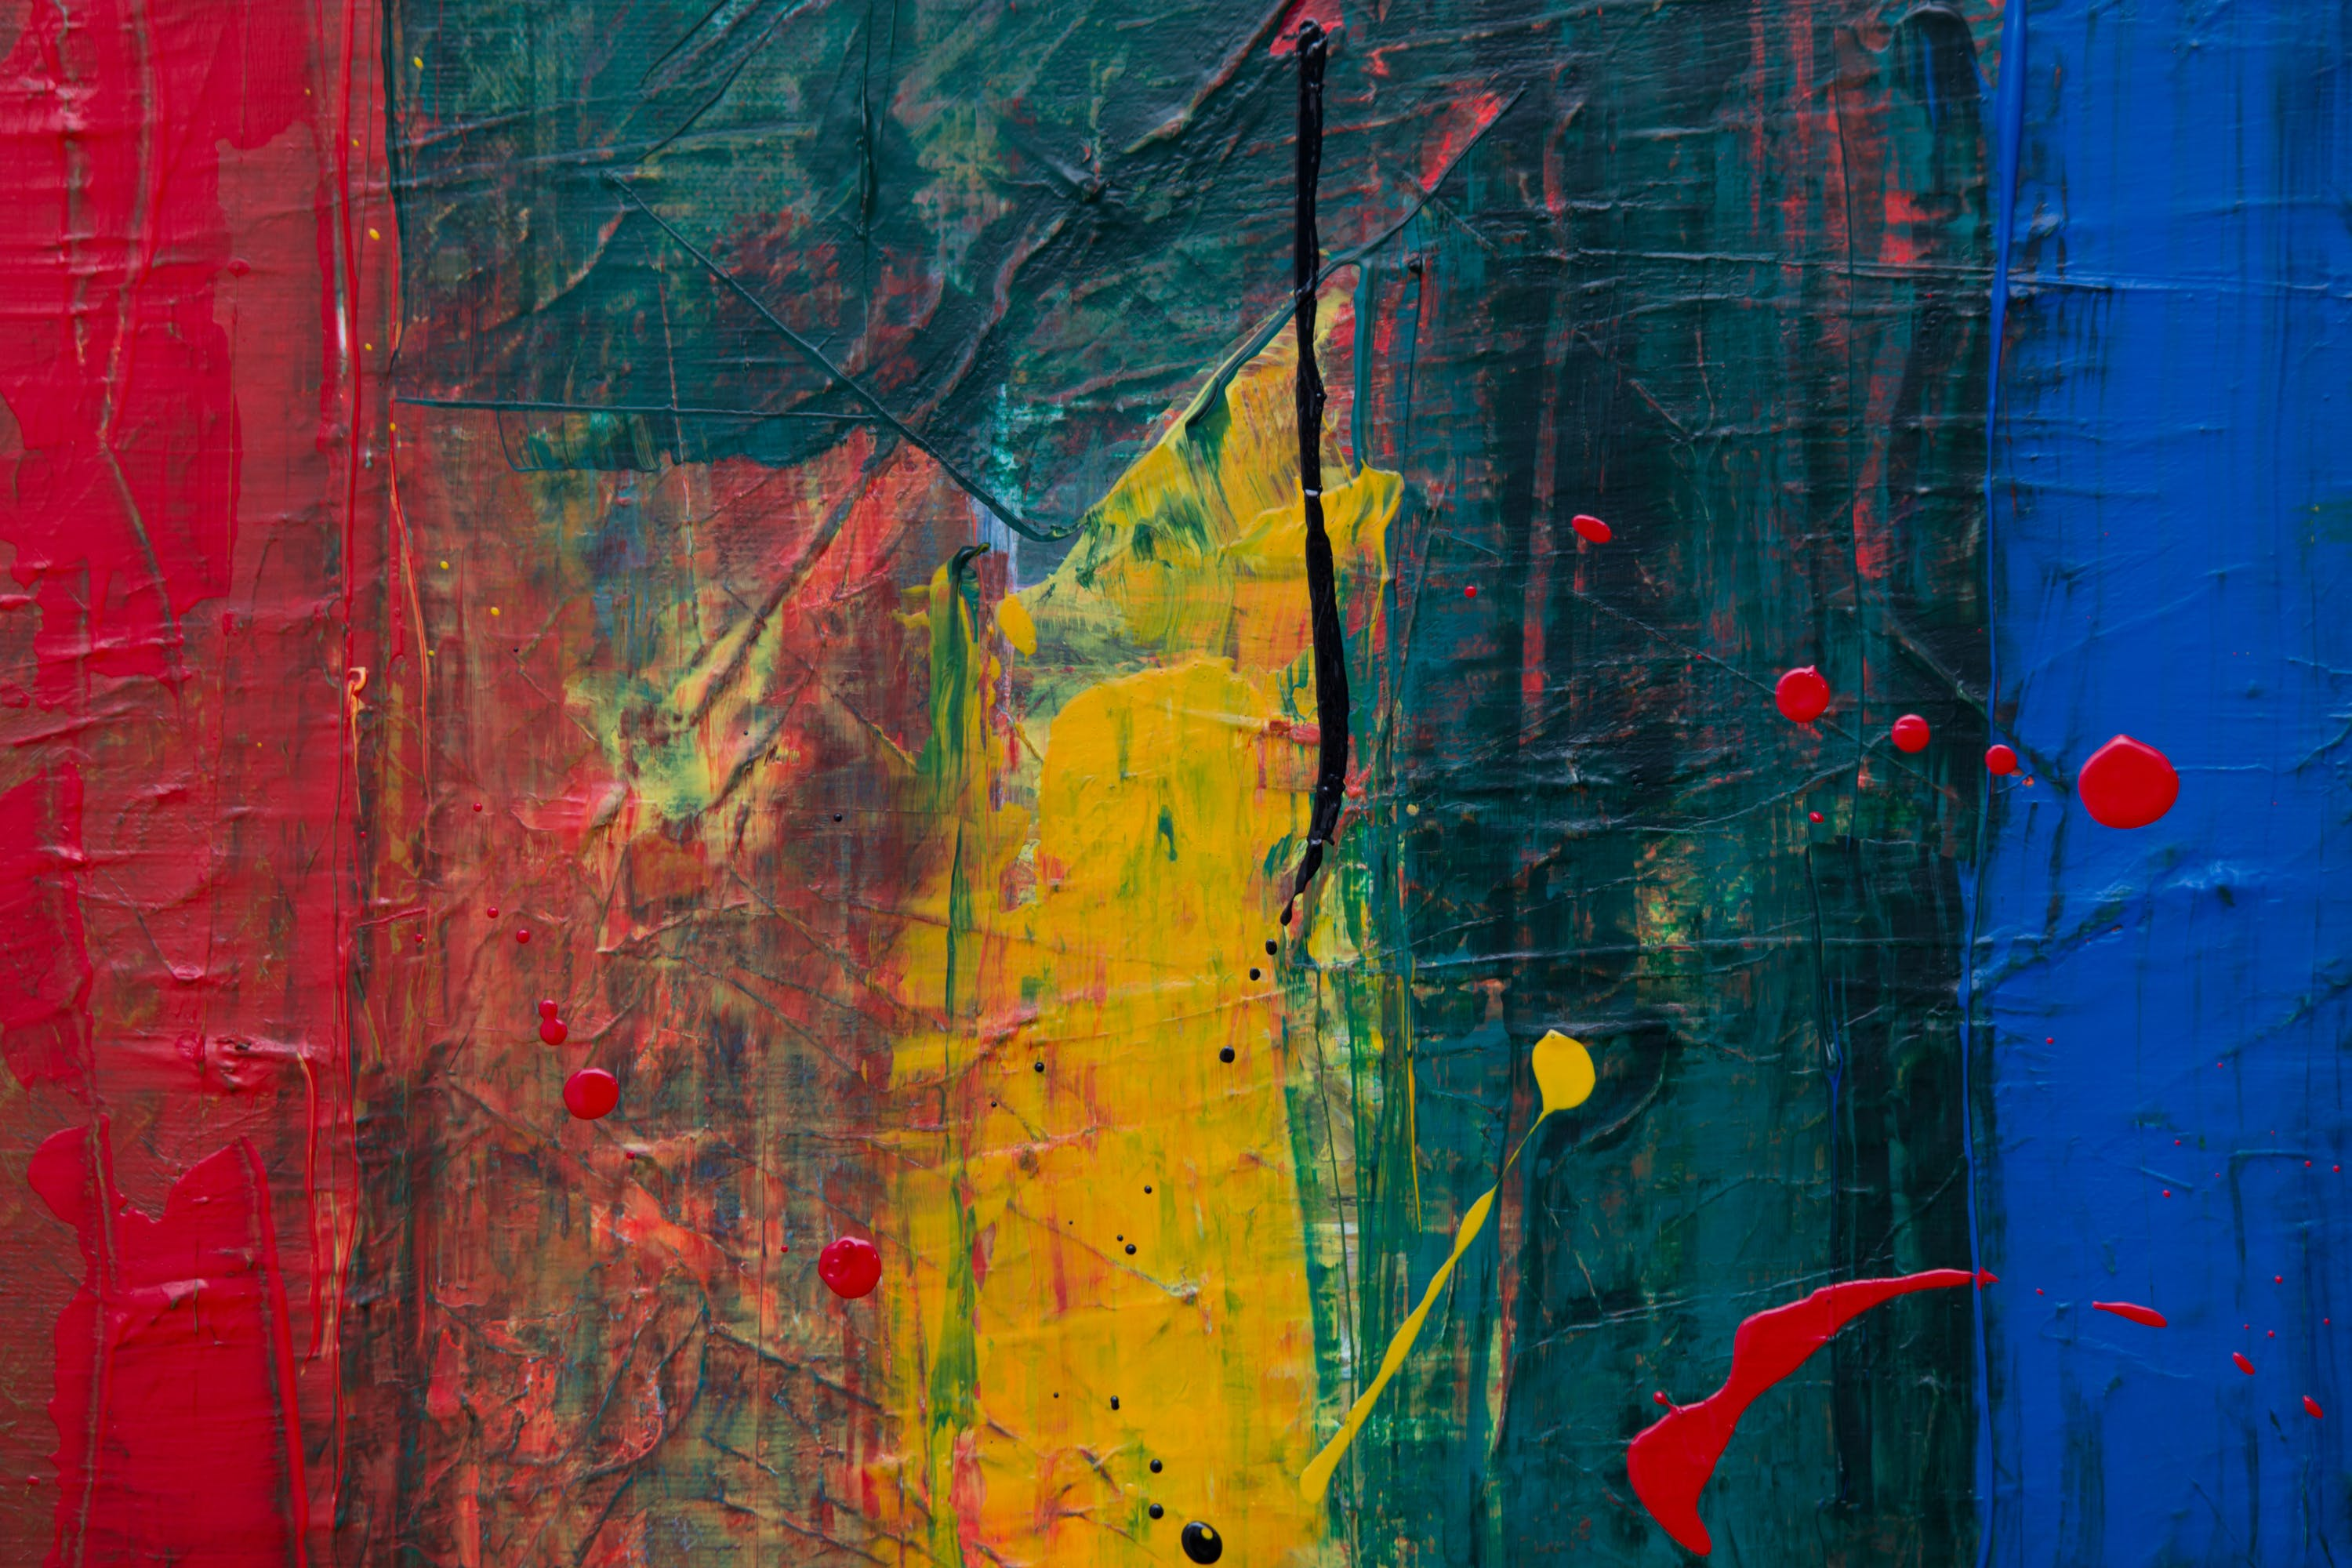 Free stock photo of abstract expressionism, abstract painting, acrylic paint, background